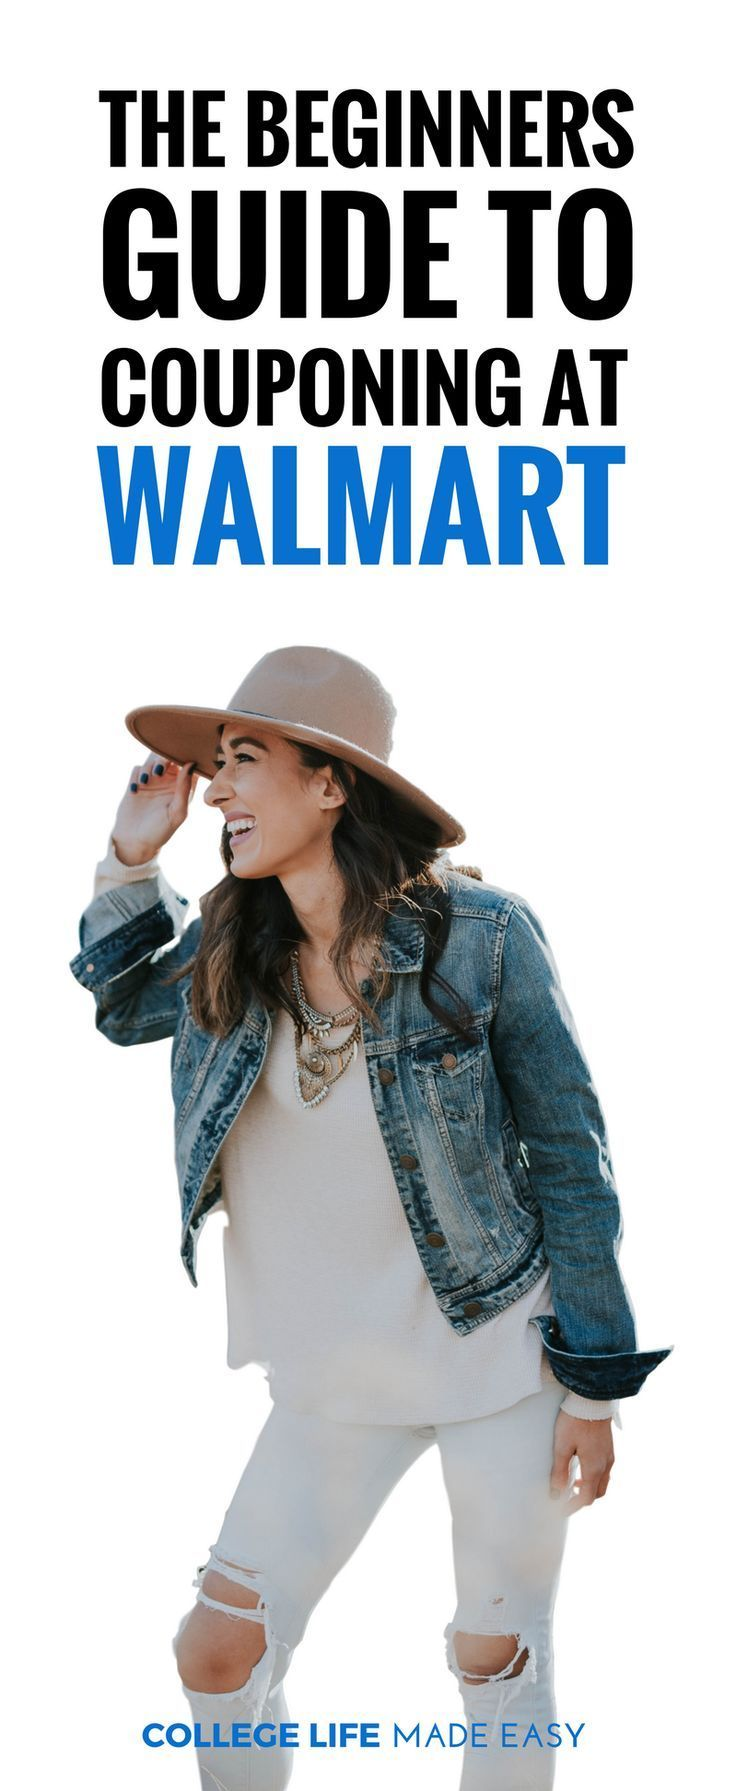 See all the current Walmart deals and the sales in the Walmart Weekly Ad all in the same place. Walmart doesn't run sales or promotions so the biggest way to save in pairing in manufacturer coupons along with mobile apps for double the savings!